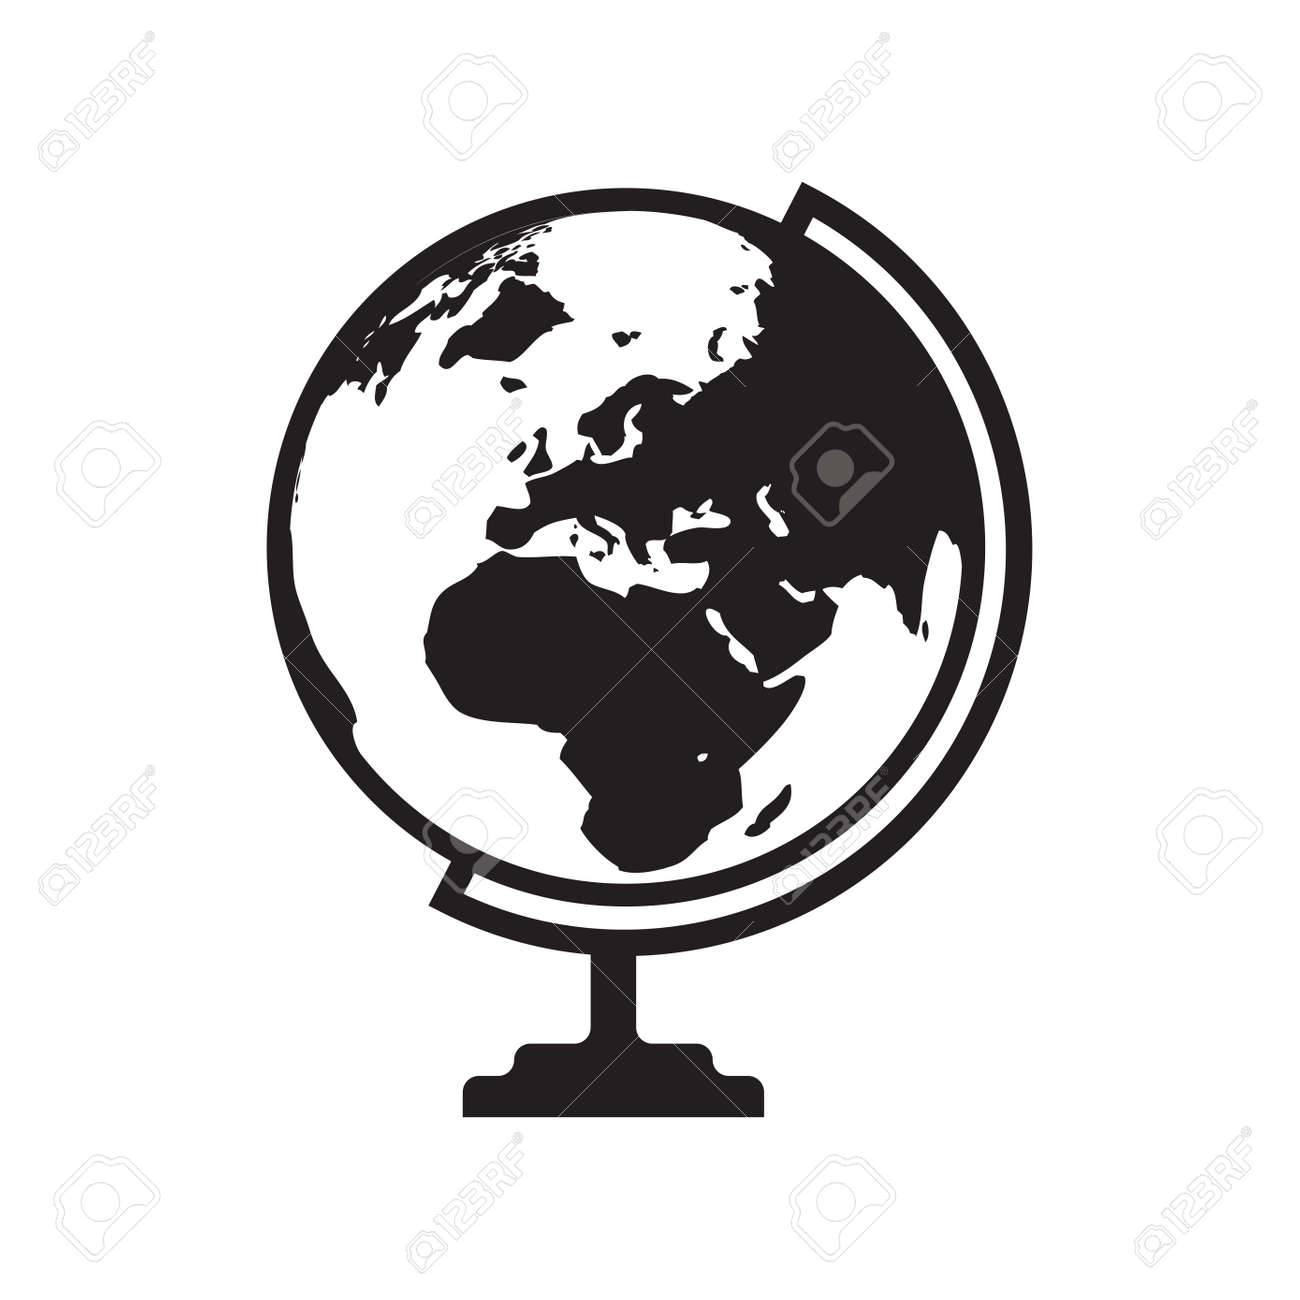 Flat world map vector picture ideas references flat world map vector globe icon vector with asia africa and europe map flat icon isolated gumiabroncs Choice Image